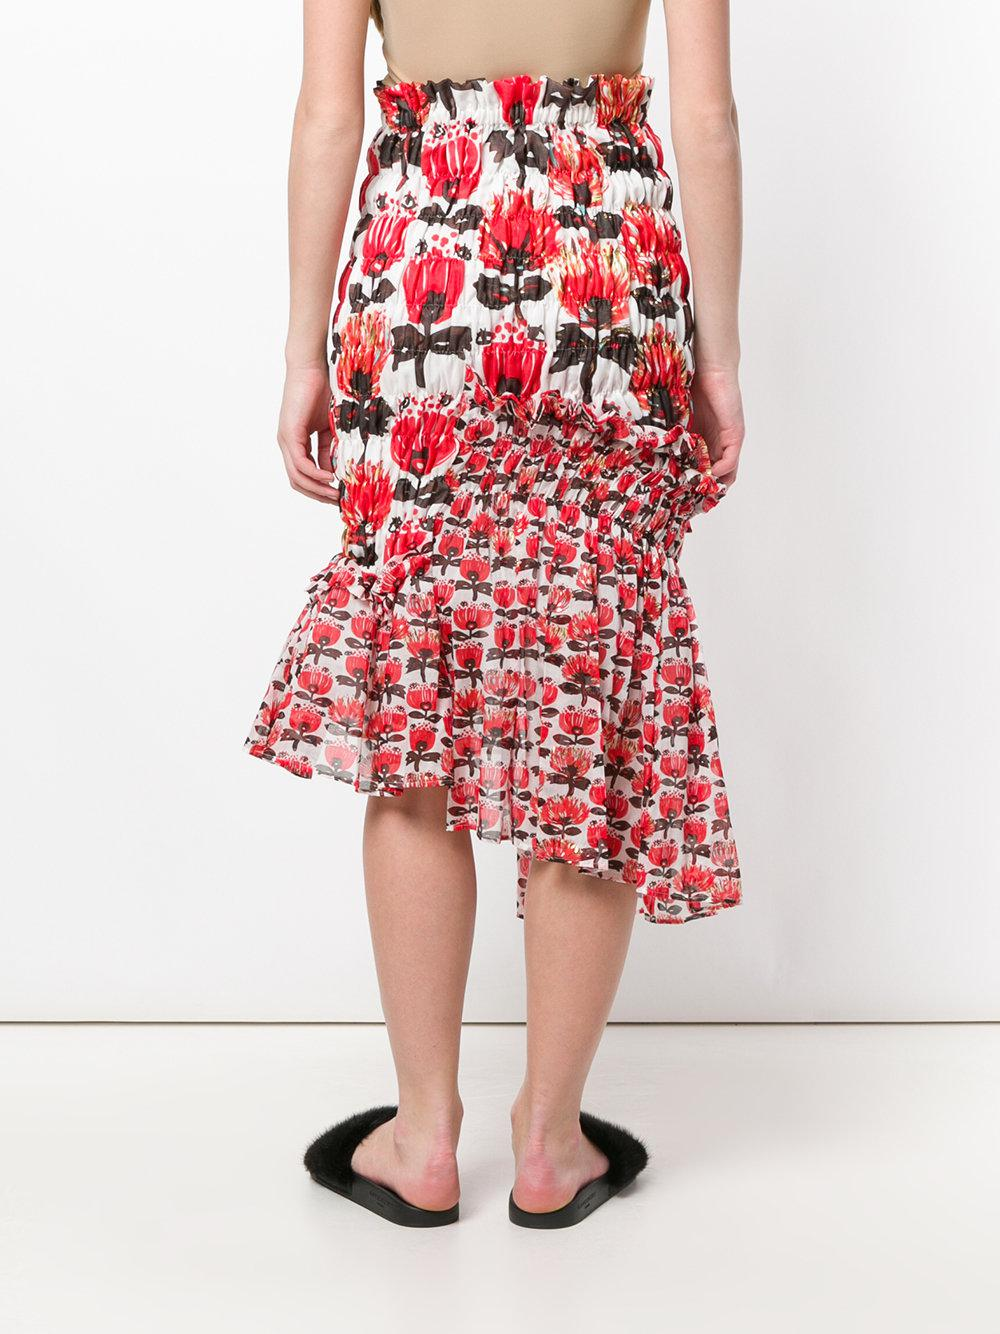 Recommend Online asymmetric high-waisted skirt - Red Tsumori Chisato Sale Shop Offer 98NrDIrw